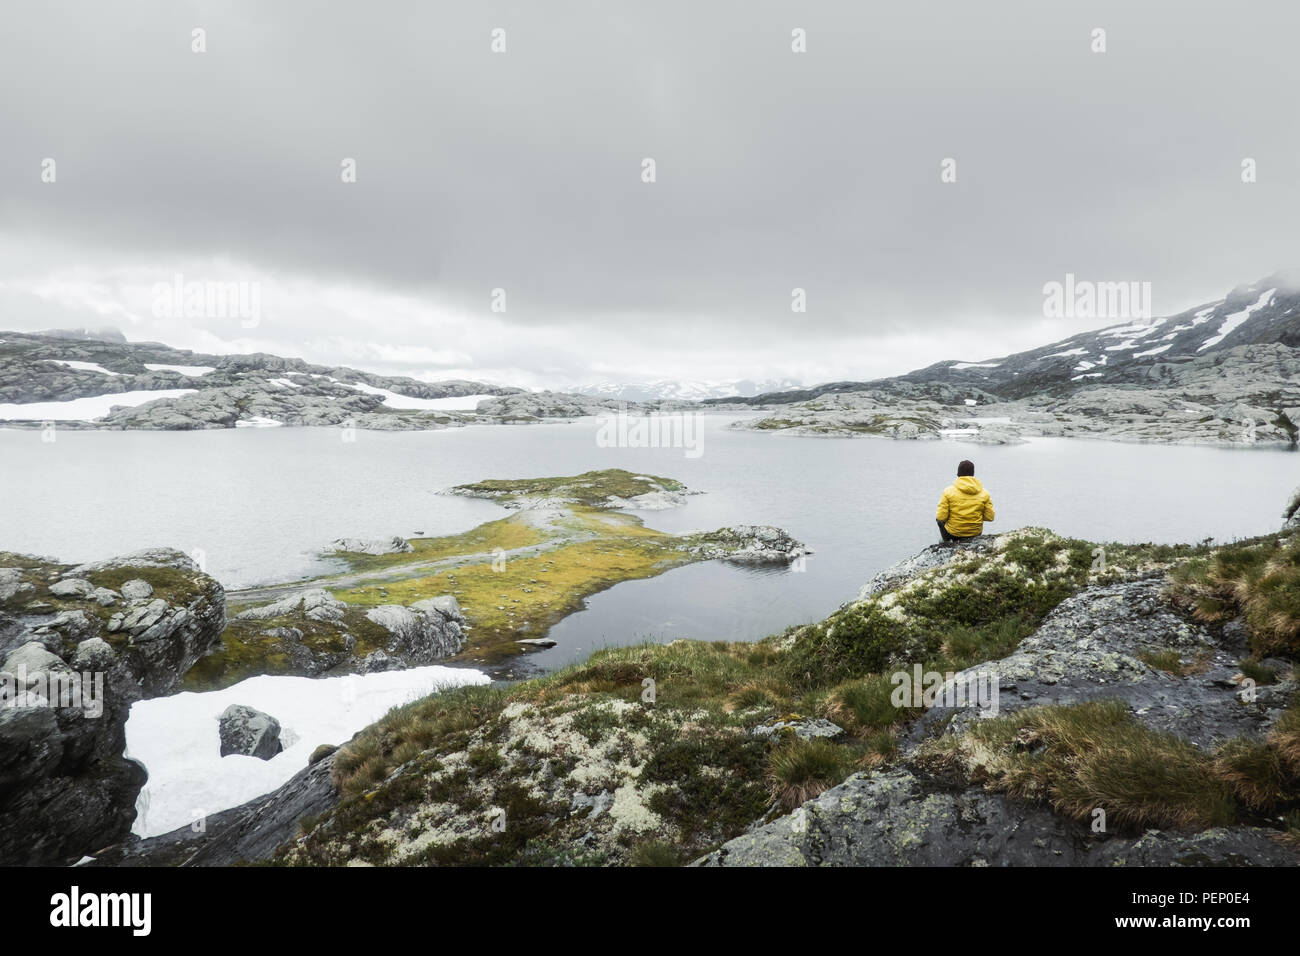 Typical norwegian landscape with snowy mountains - Stock Image